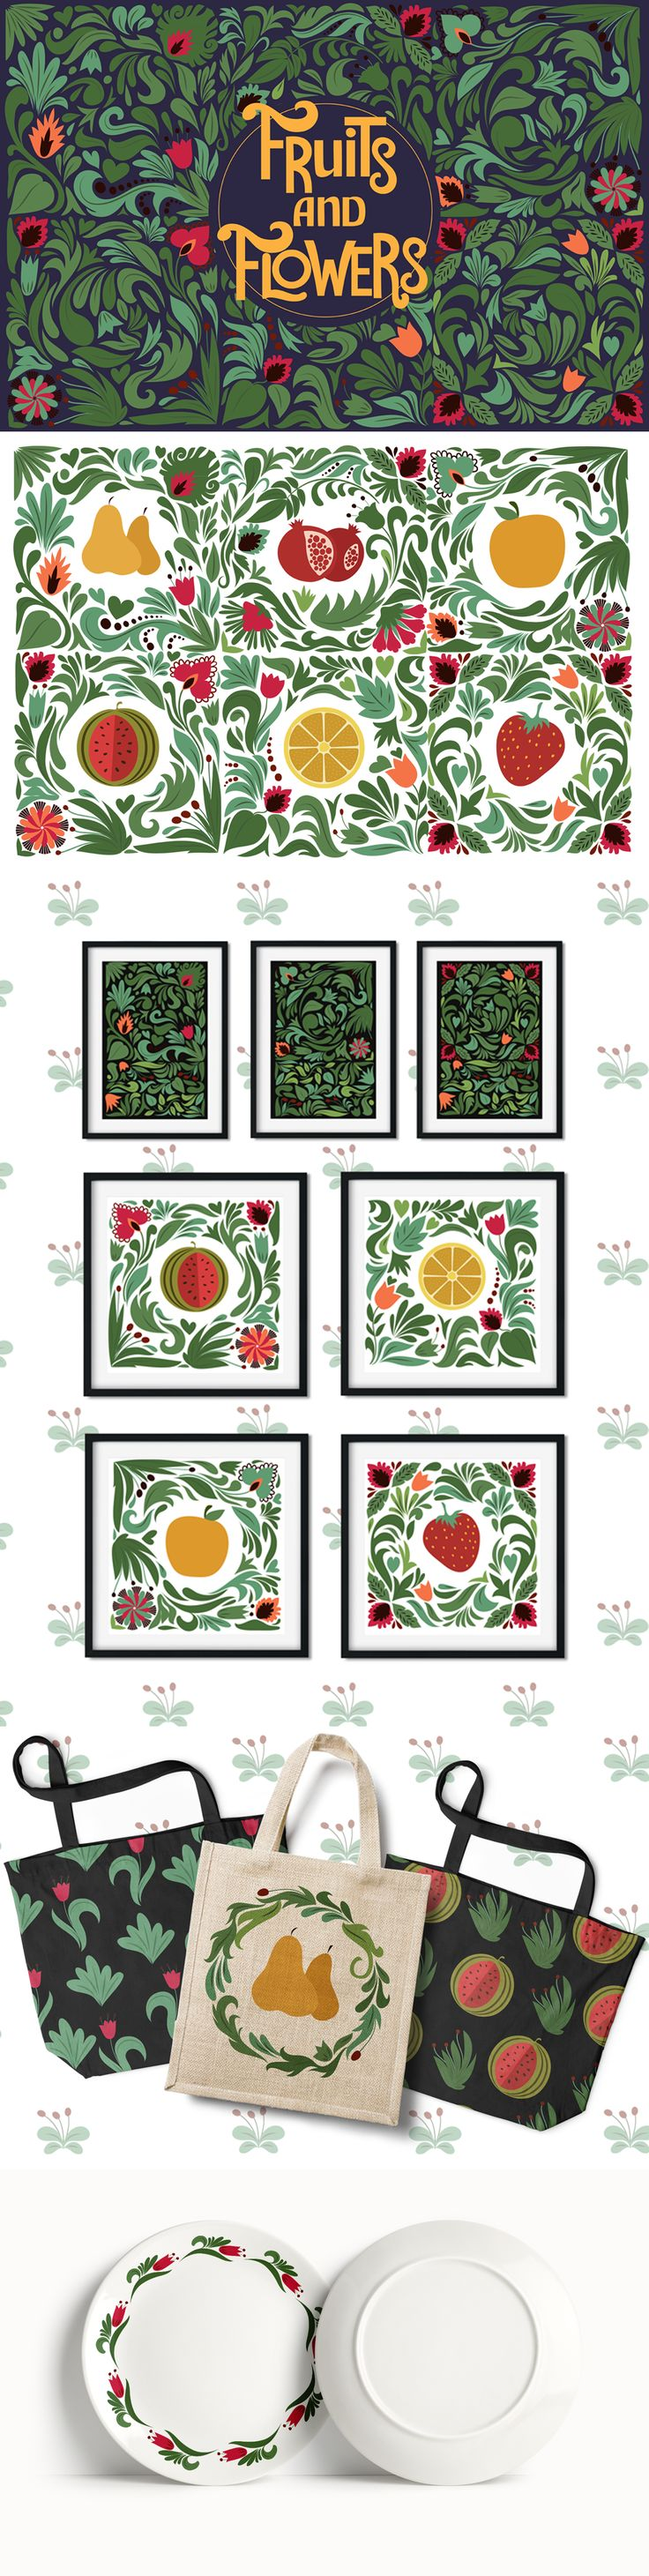 Welcome to the Fruits and Flowers set! Combine the flowers, elements and wreaths.This set is perfect for packaging, invites,greeting cards, merchandise design.